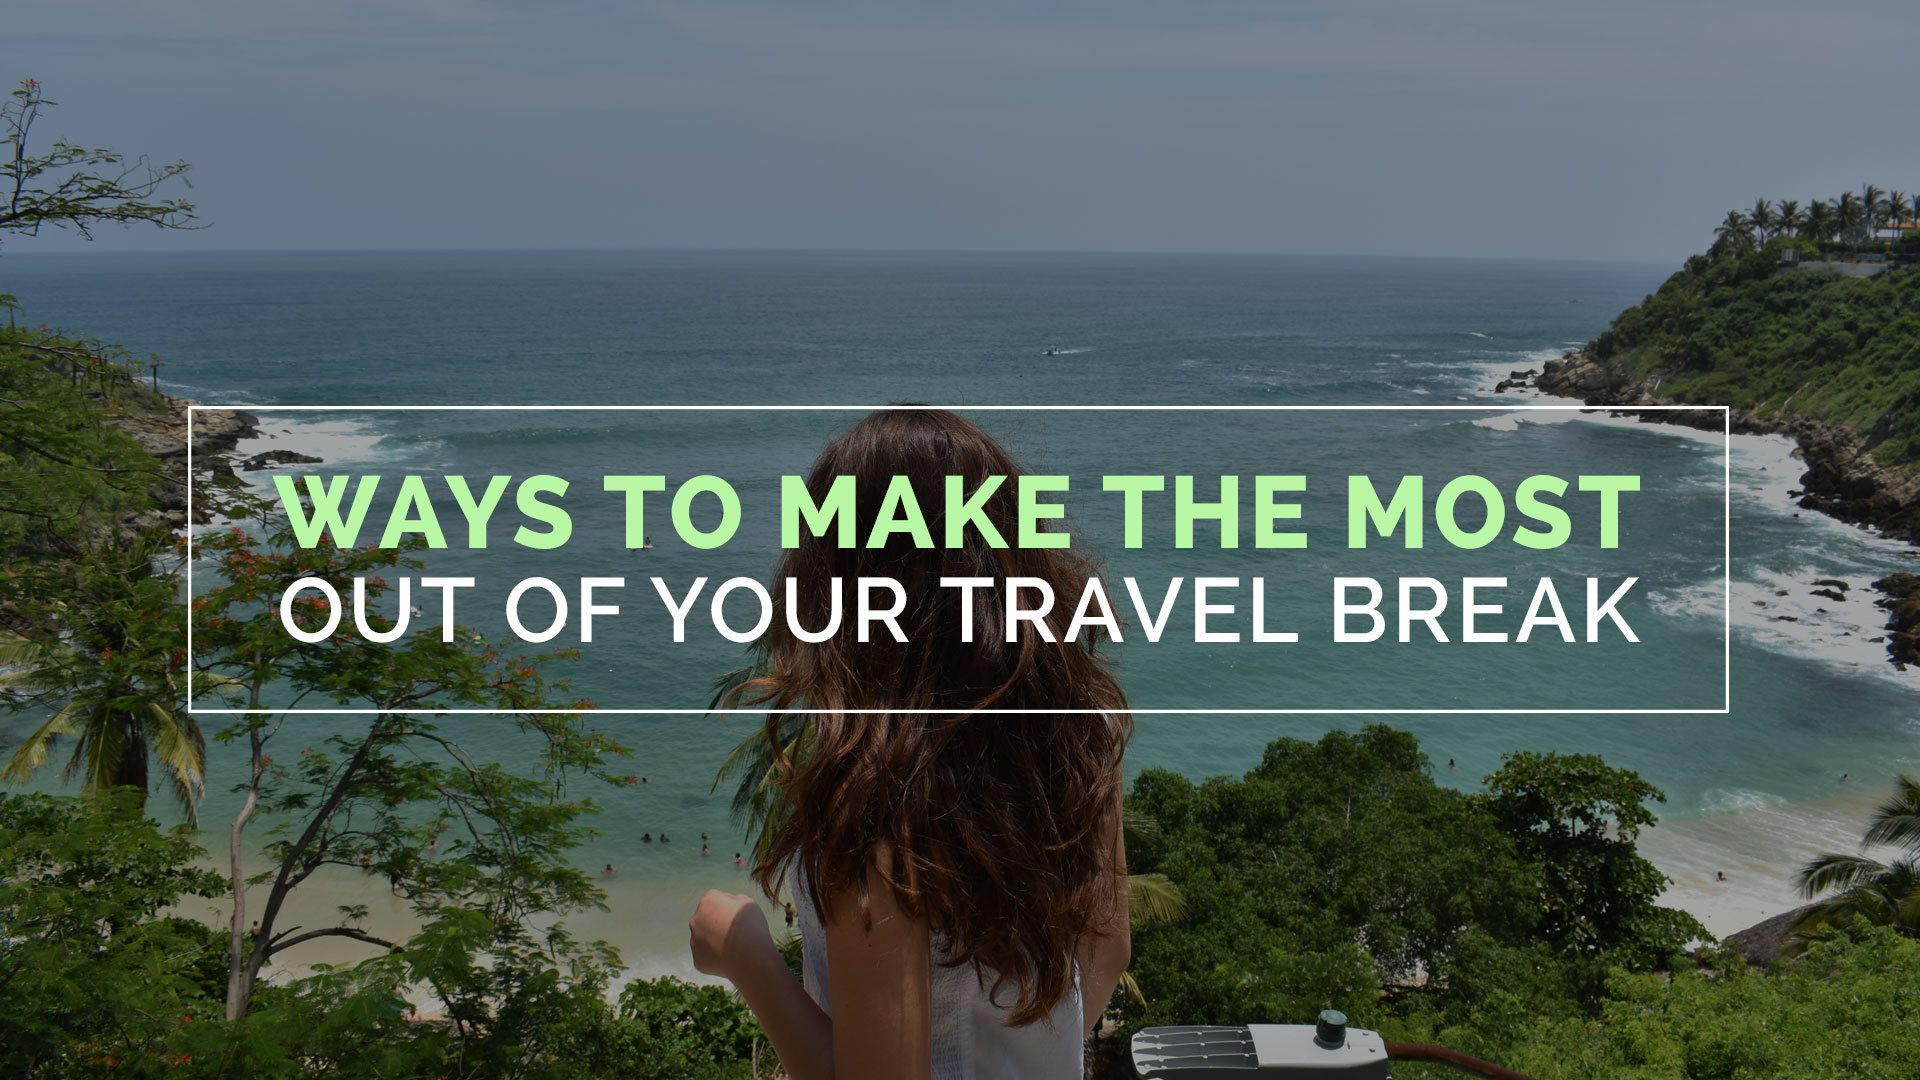 Ways To Make The Most Out Of Your Travel Break